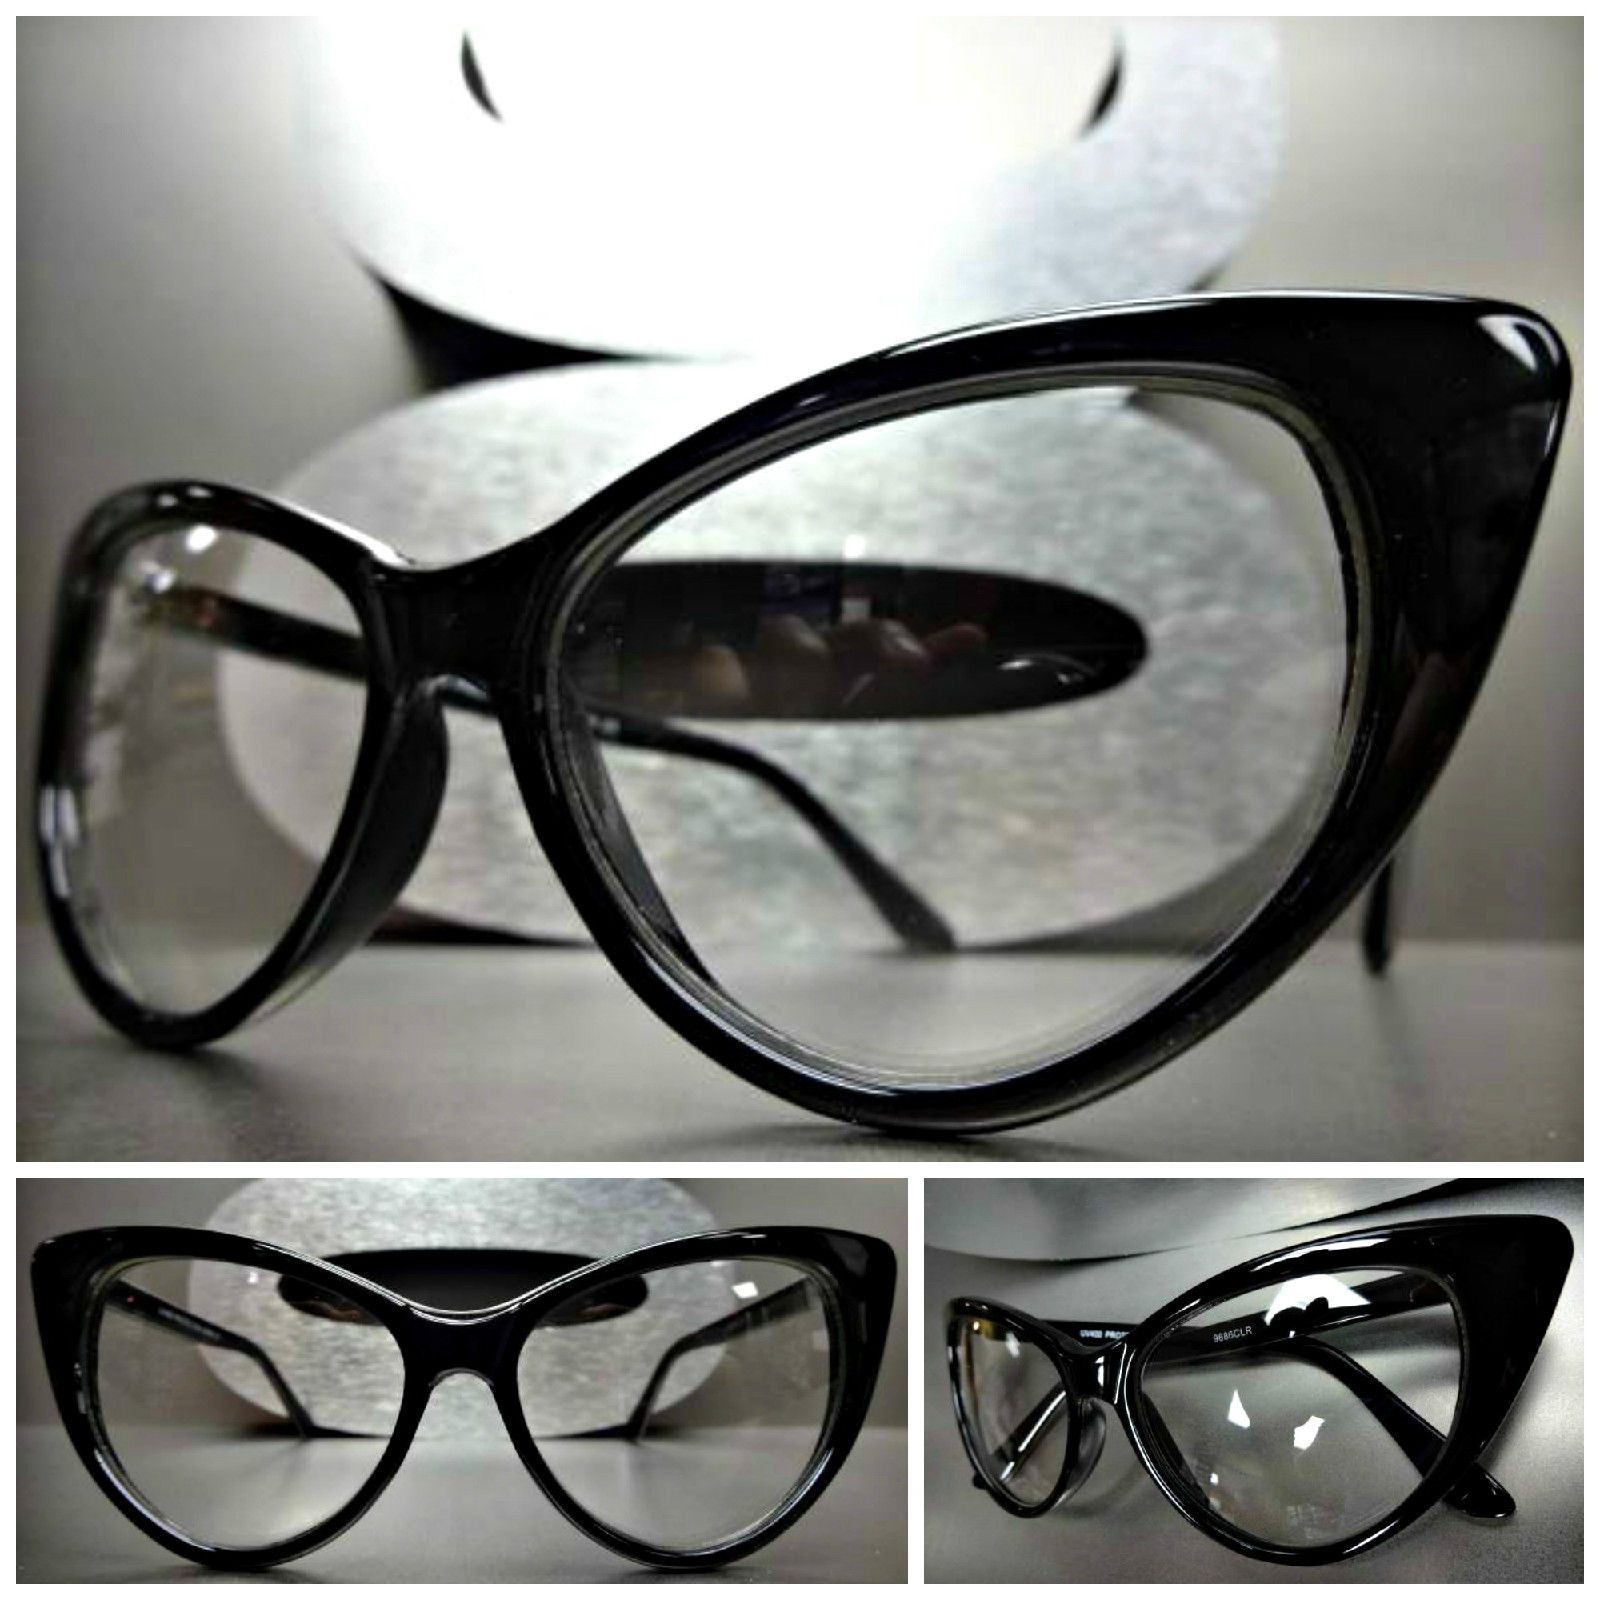 CLASSIC VINTAGE RETRO Style Clear Lens EYE GLASSES Black /& Silver Fashion Frame